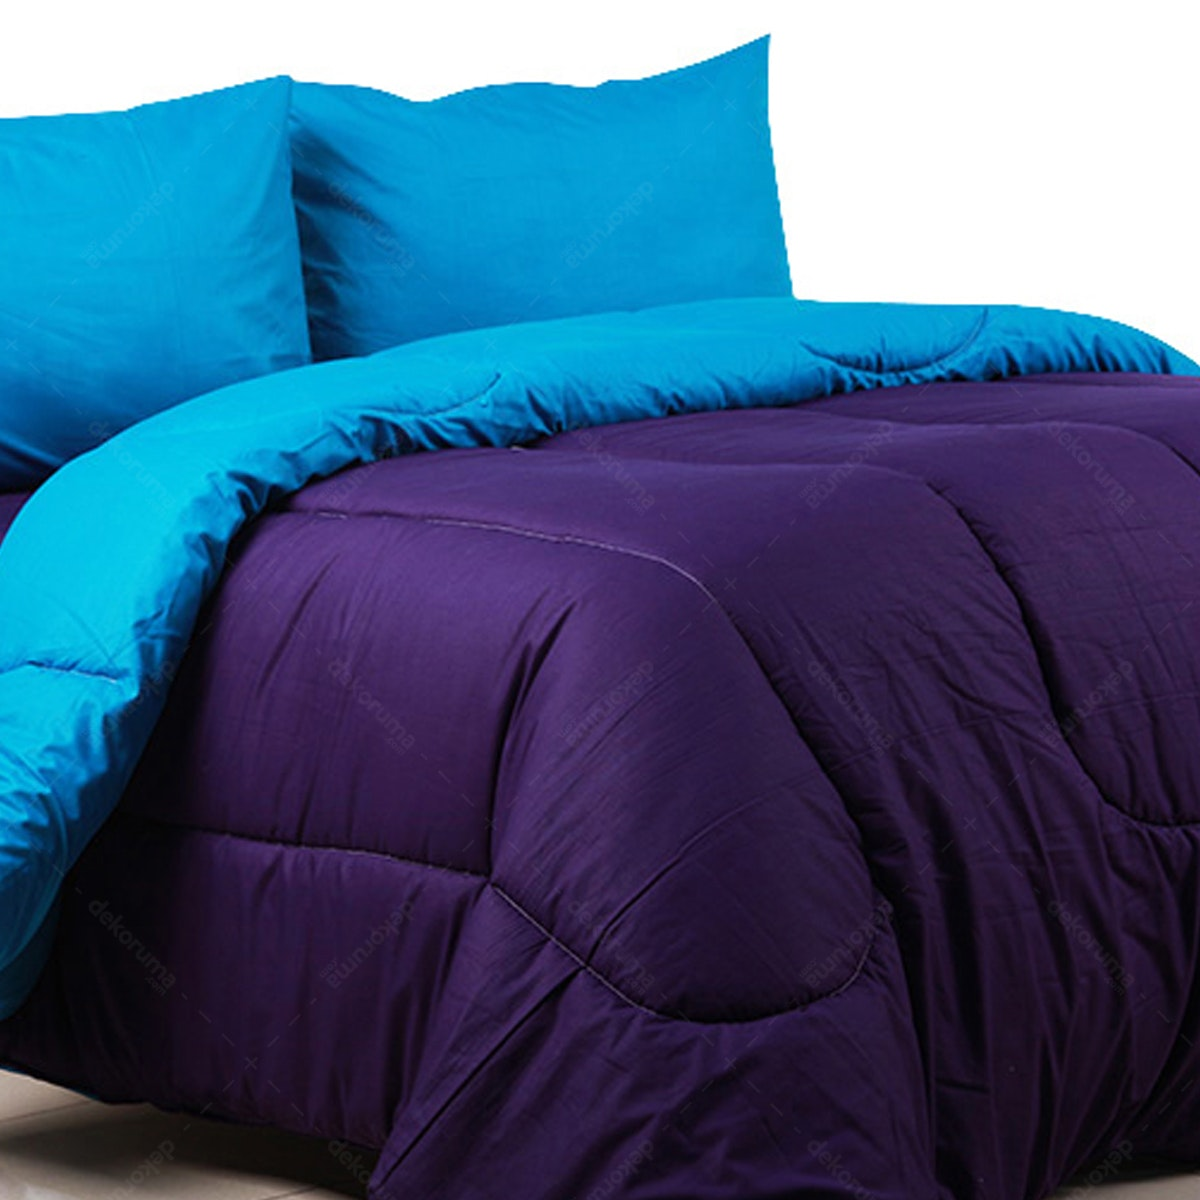 Sierra Bed Cover Dan Sprei Polos Violet Mix Turkish 160x200